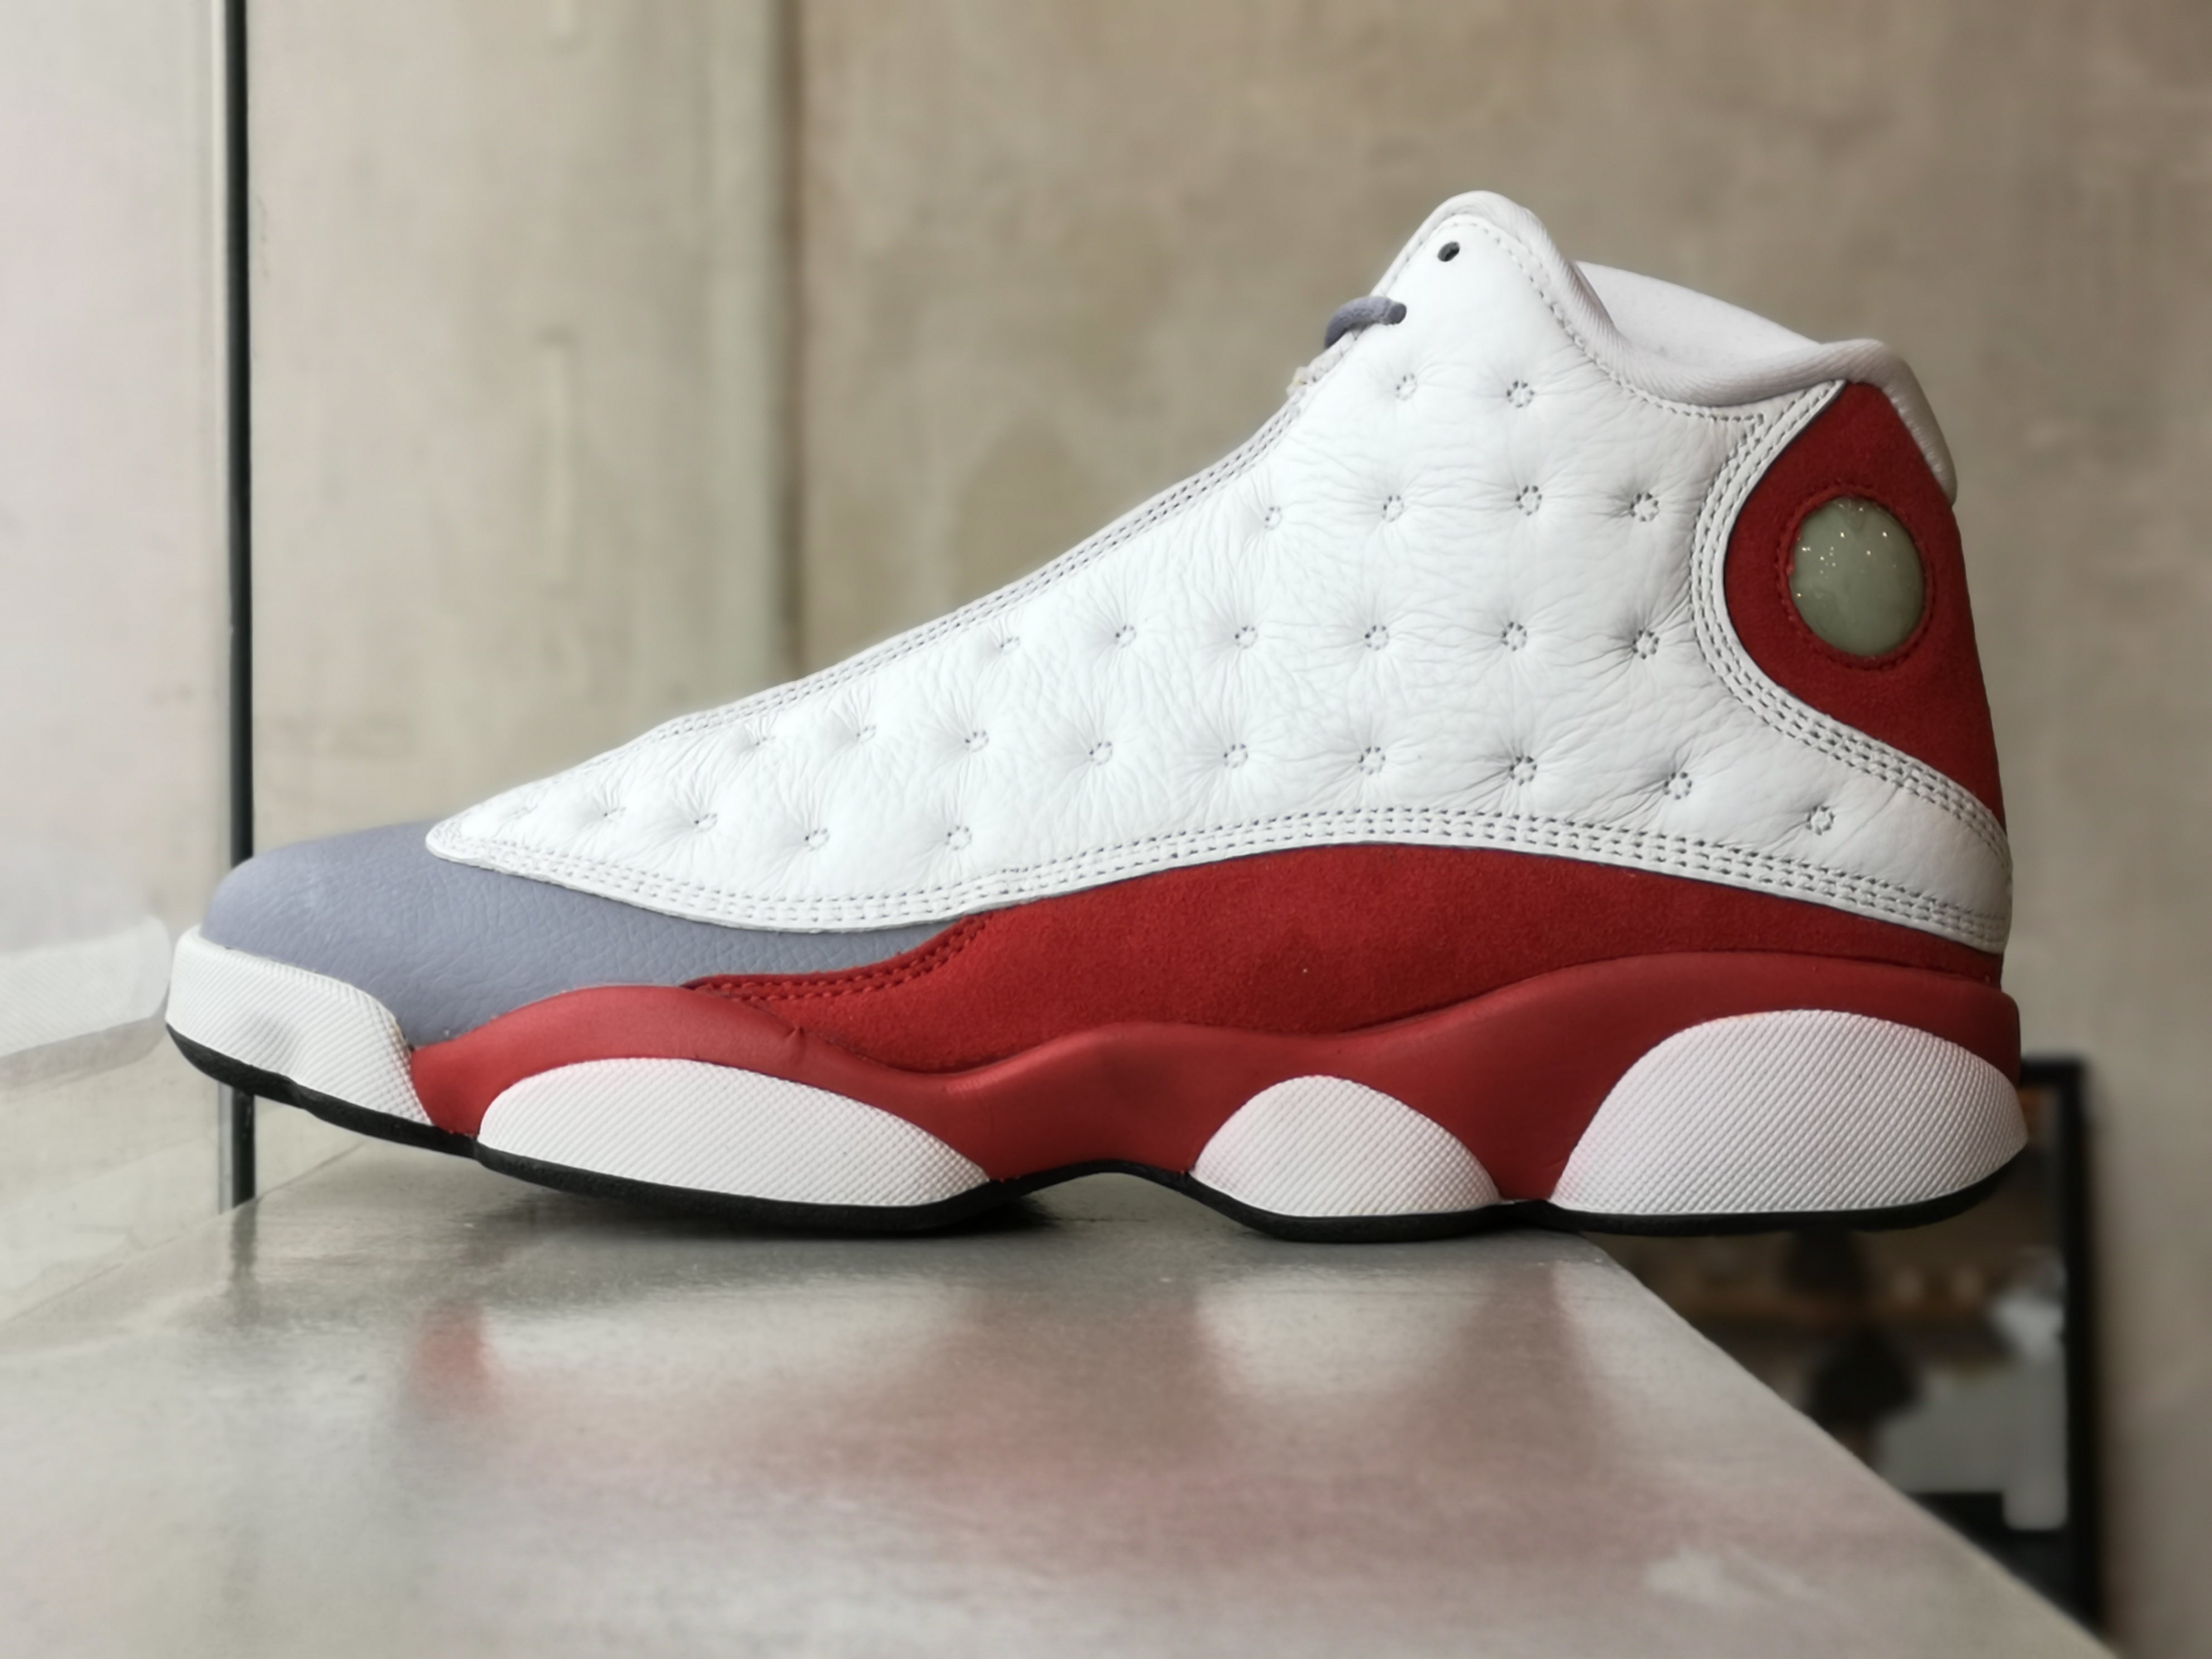 Air Jordan 13 Retro Grey Toe 2014